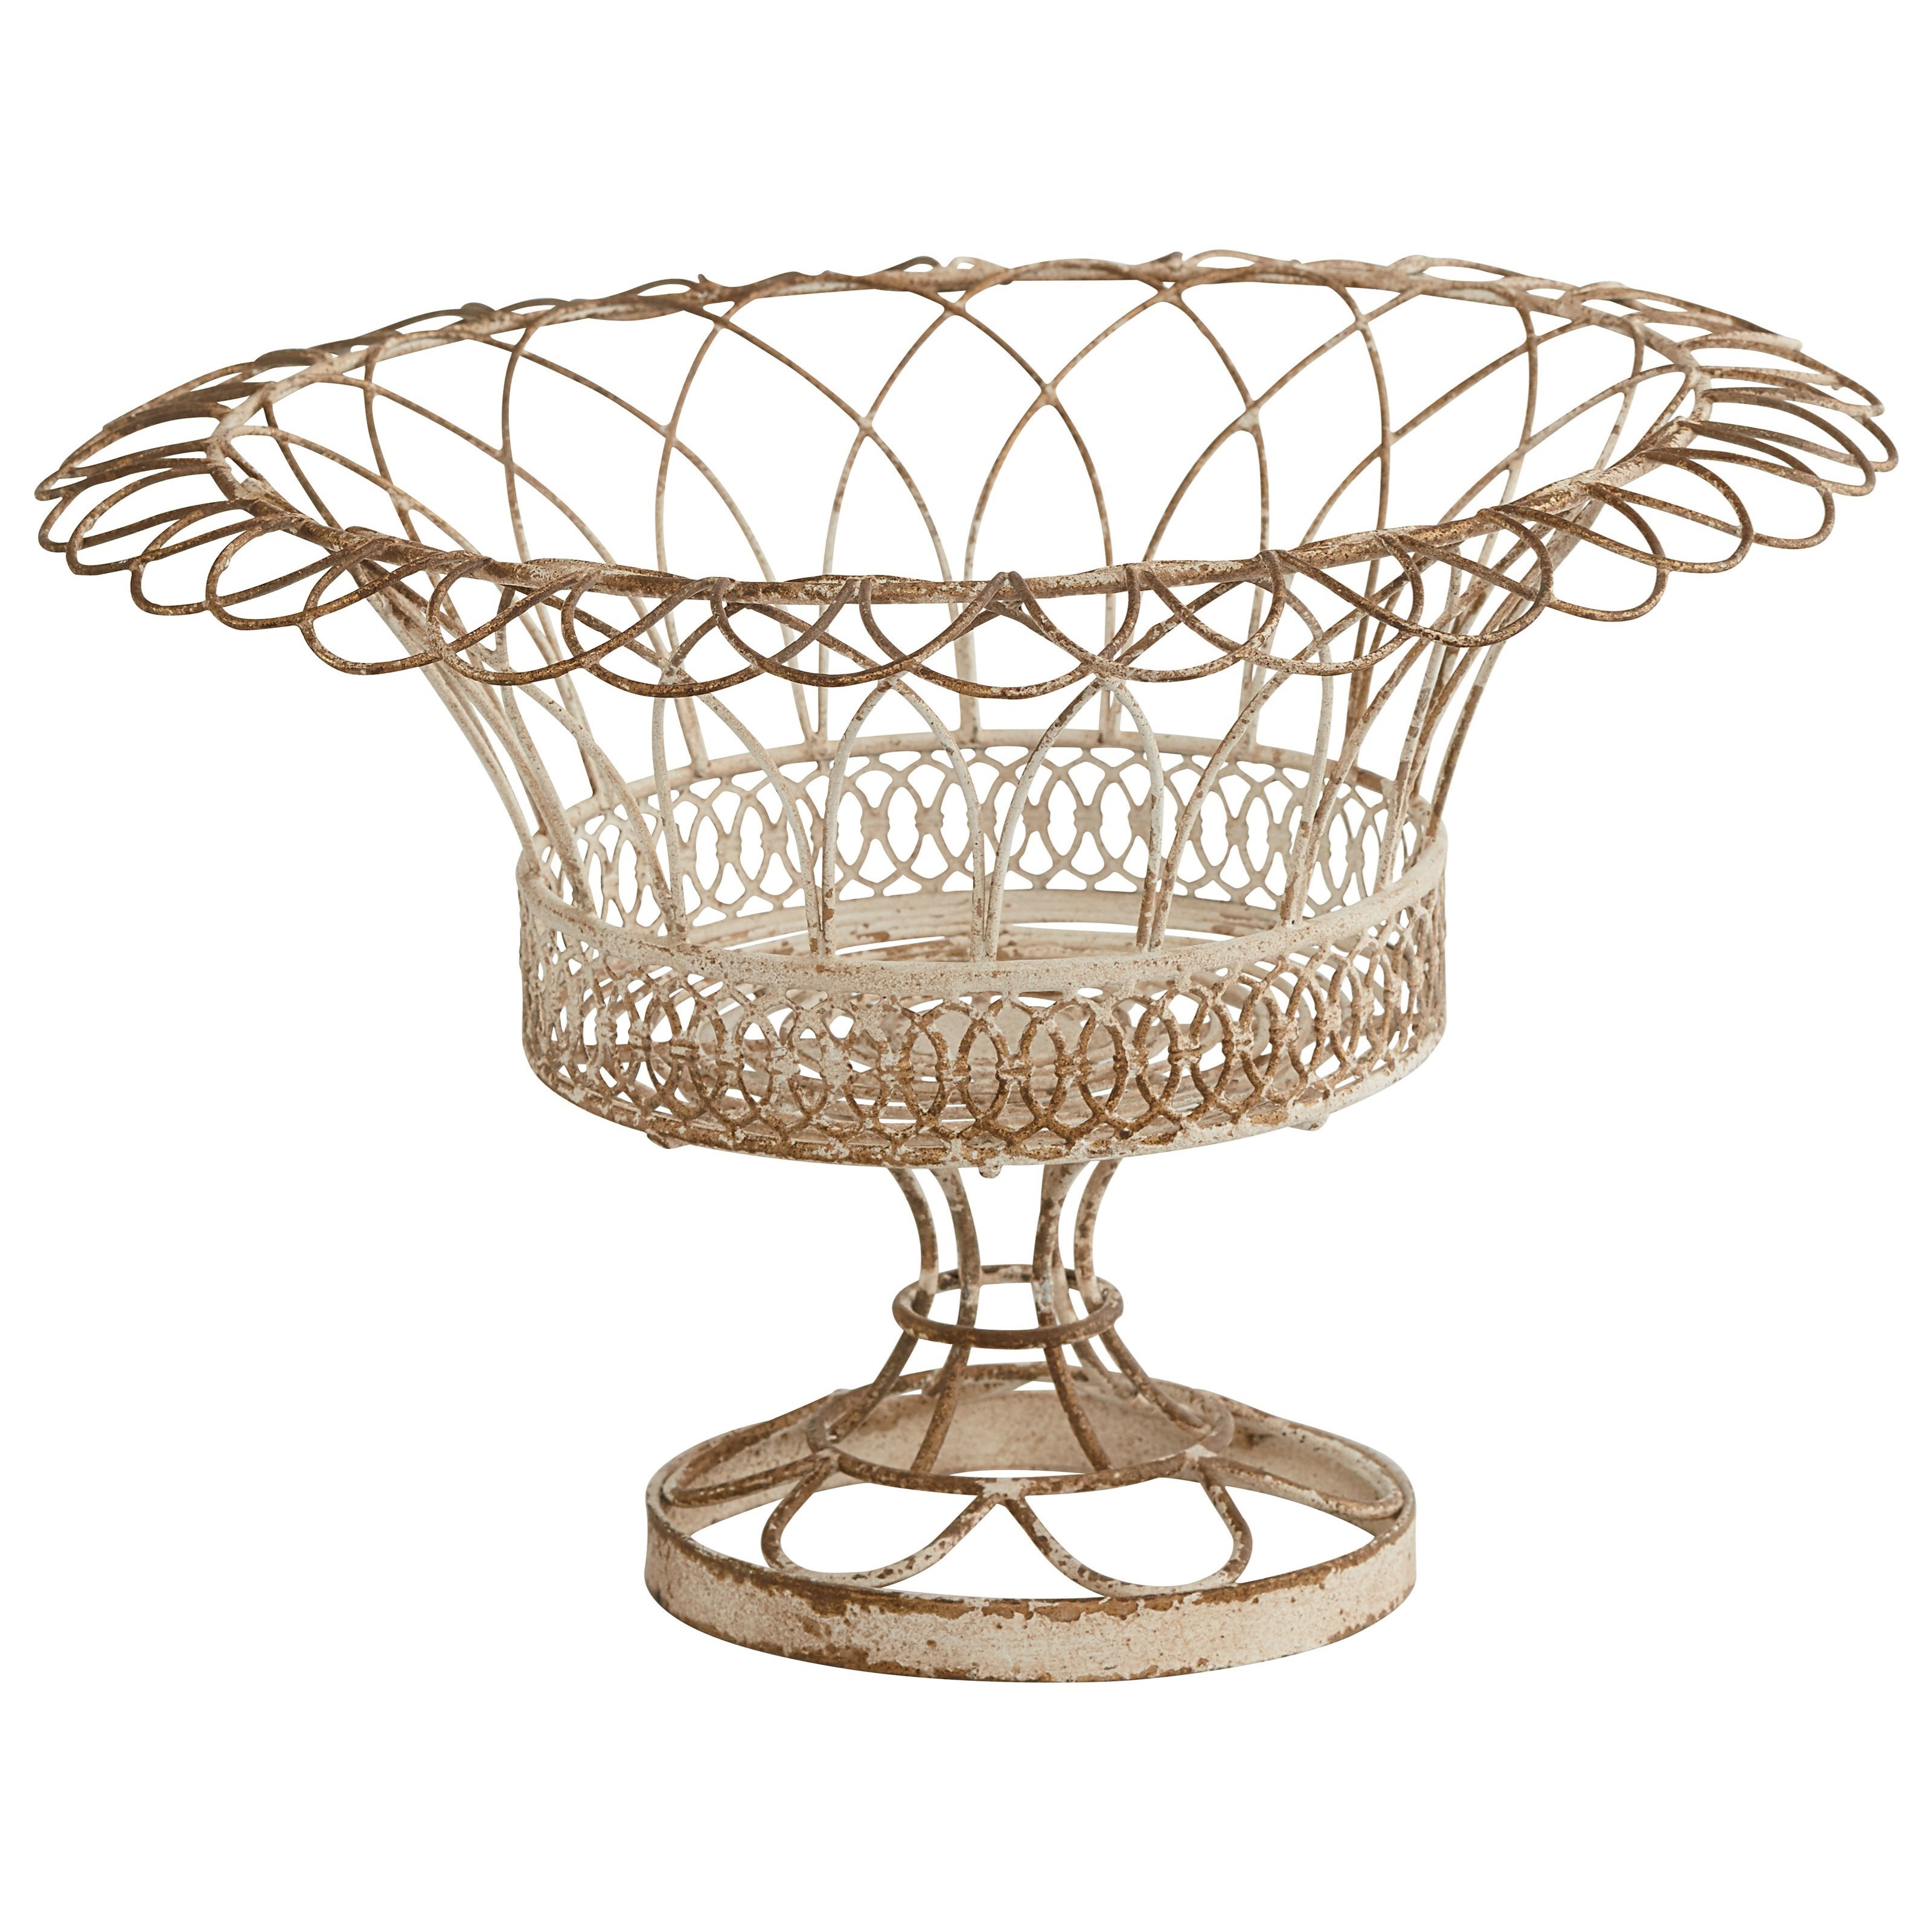 Bon Magnolia Home By Joanna Gaines Accessories Small Aged Wire Garden Urn